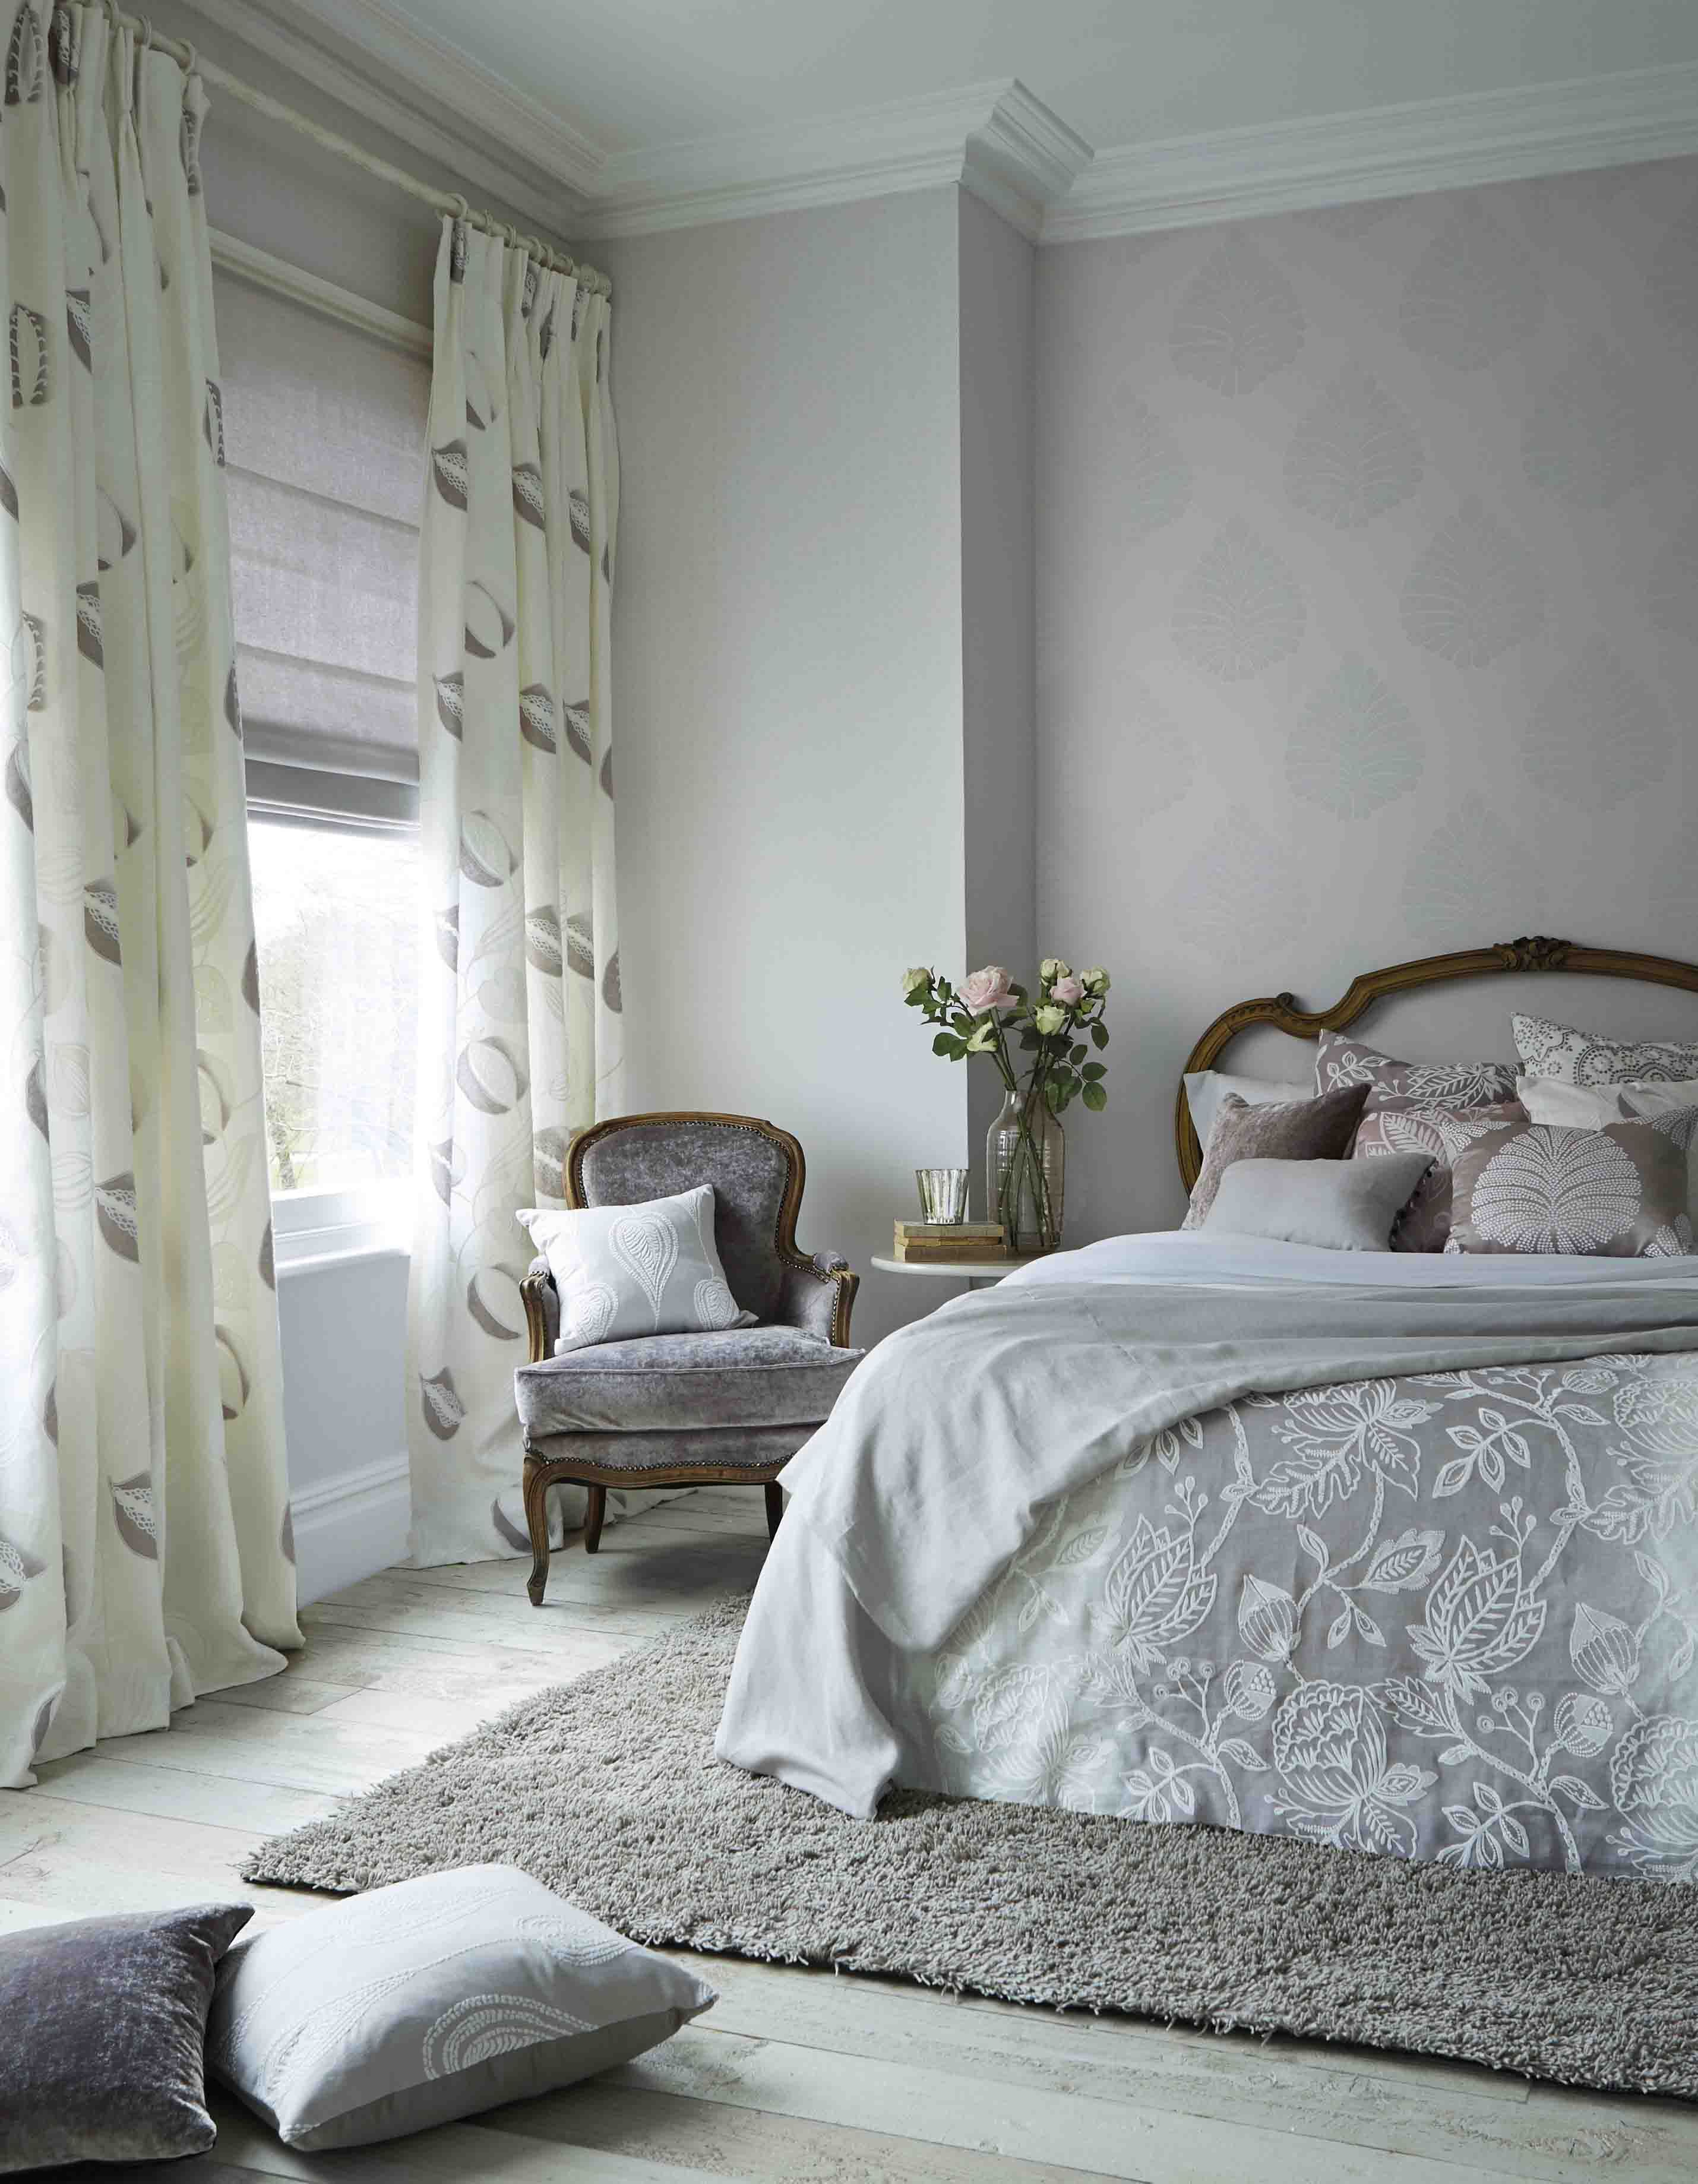 Create A Tranquil, French Styled Bedroom With Harlequins Purity Fabric